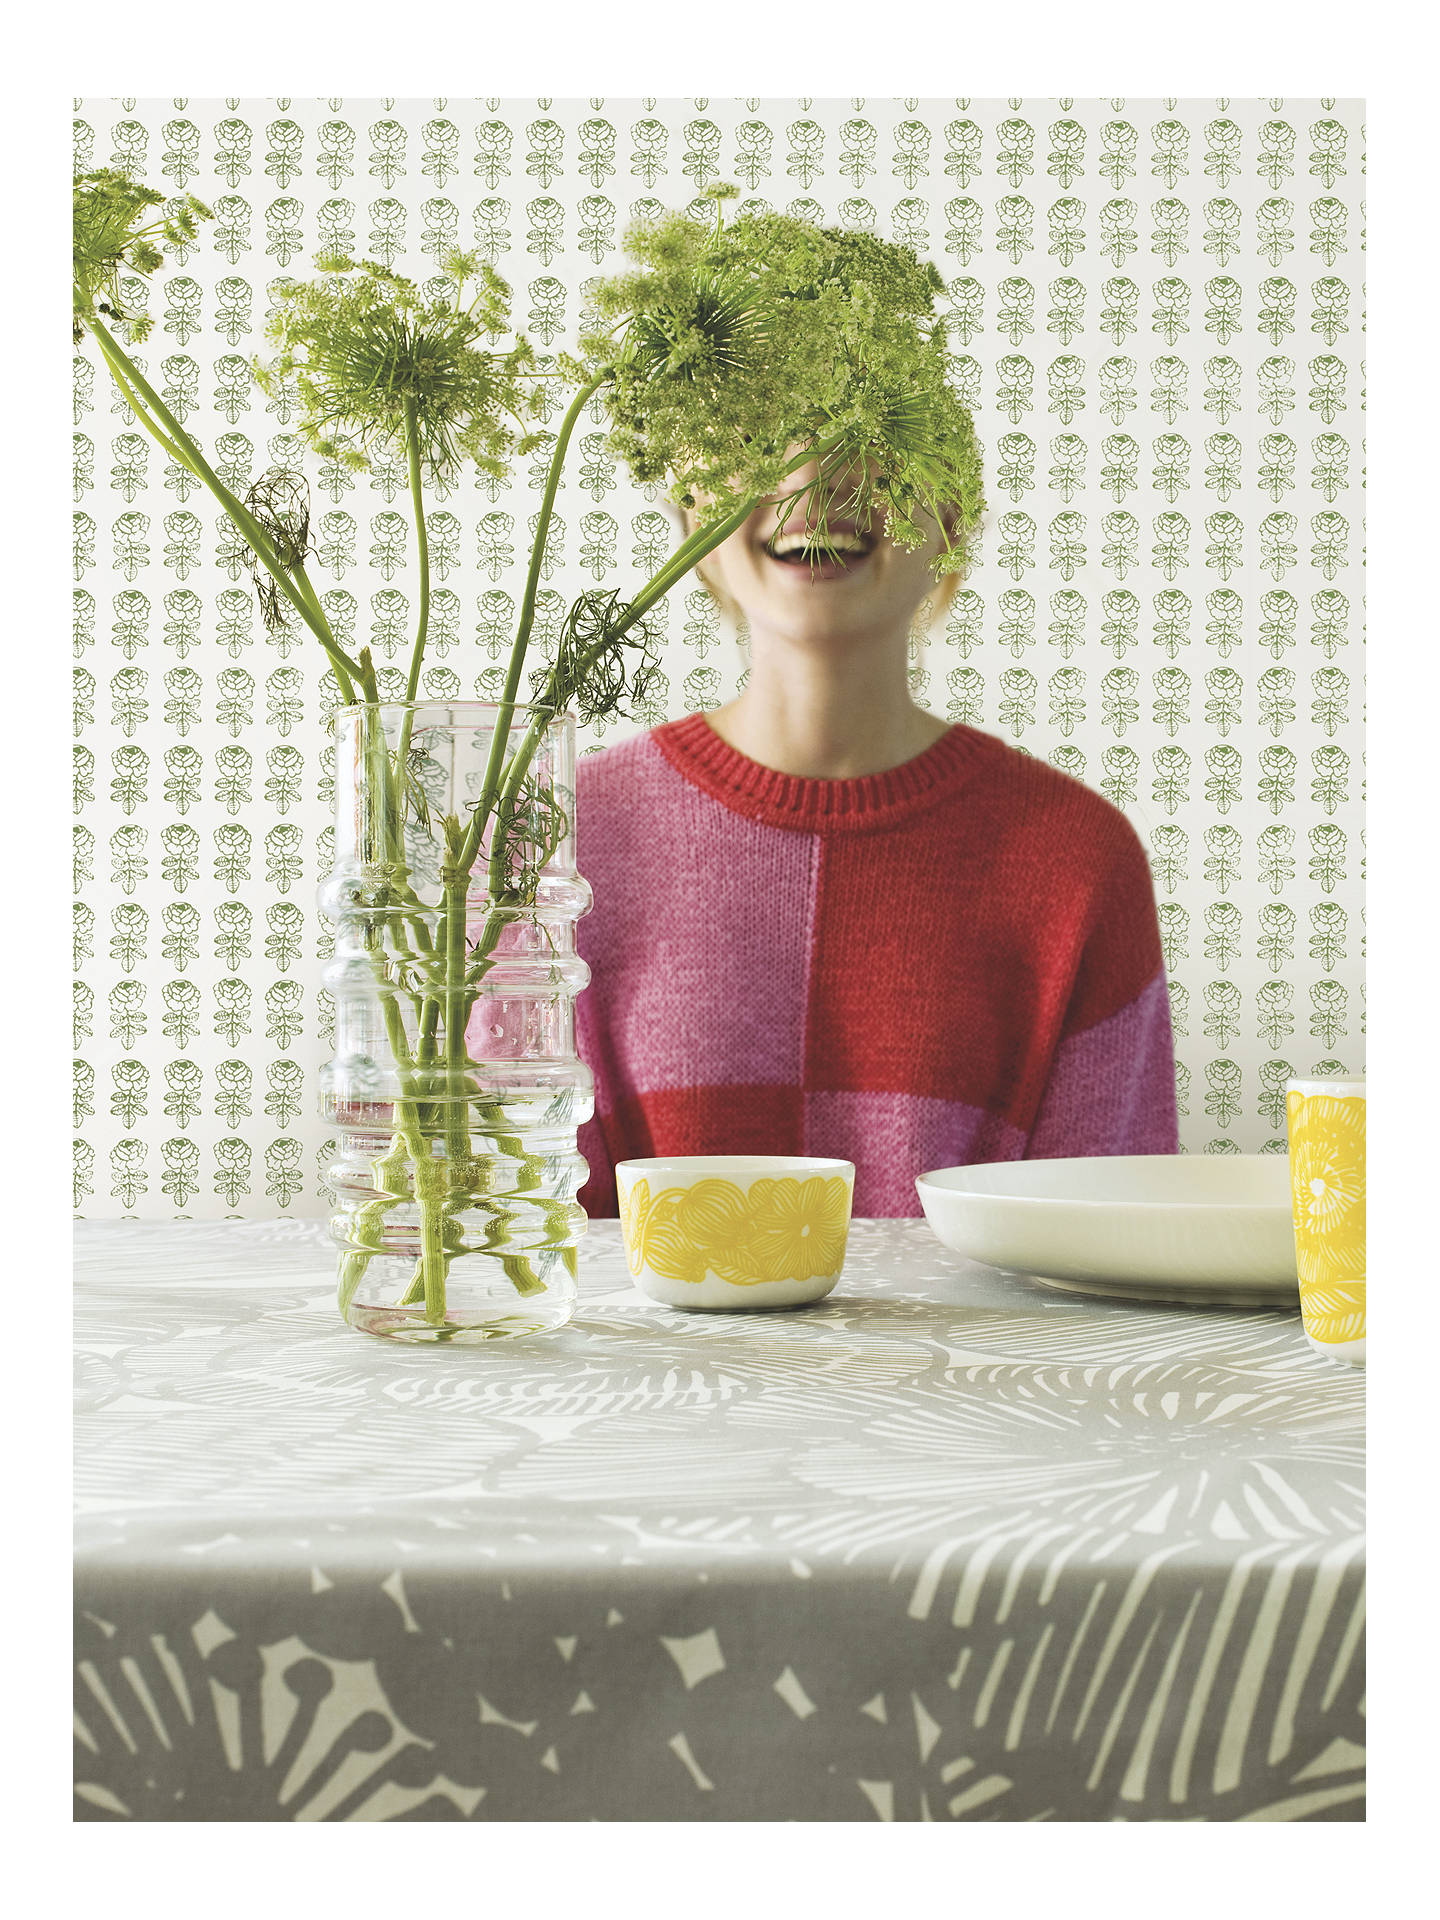 Buy Marimekko Pikkuruusu Wallpaper, 17941 Online at johnlewis.com